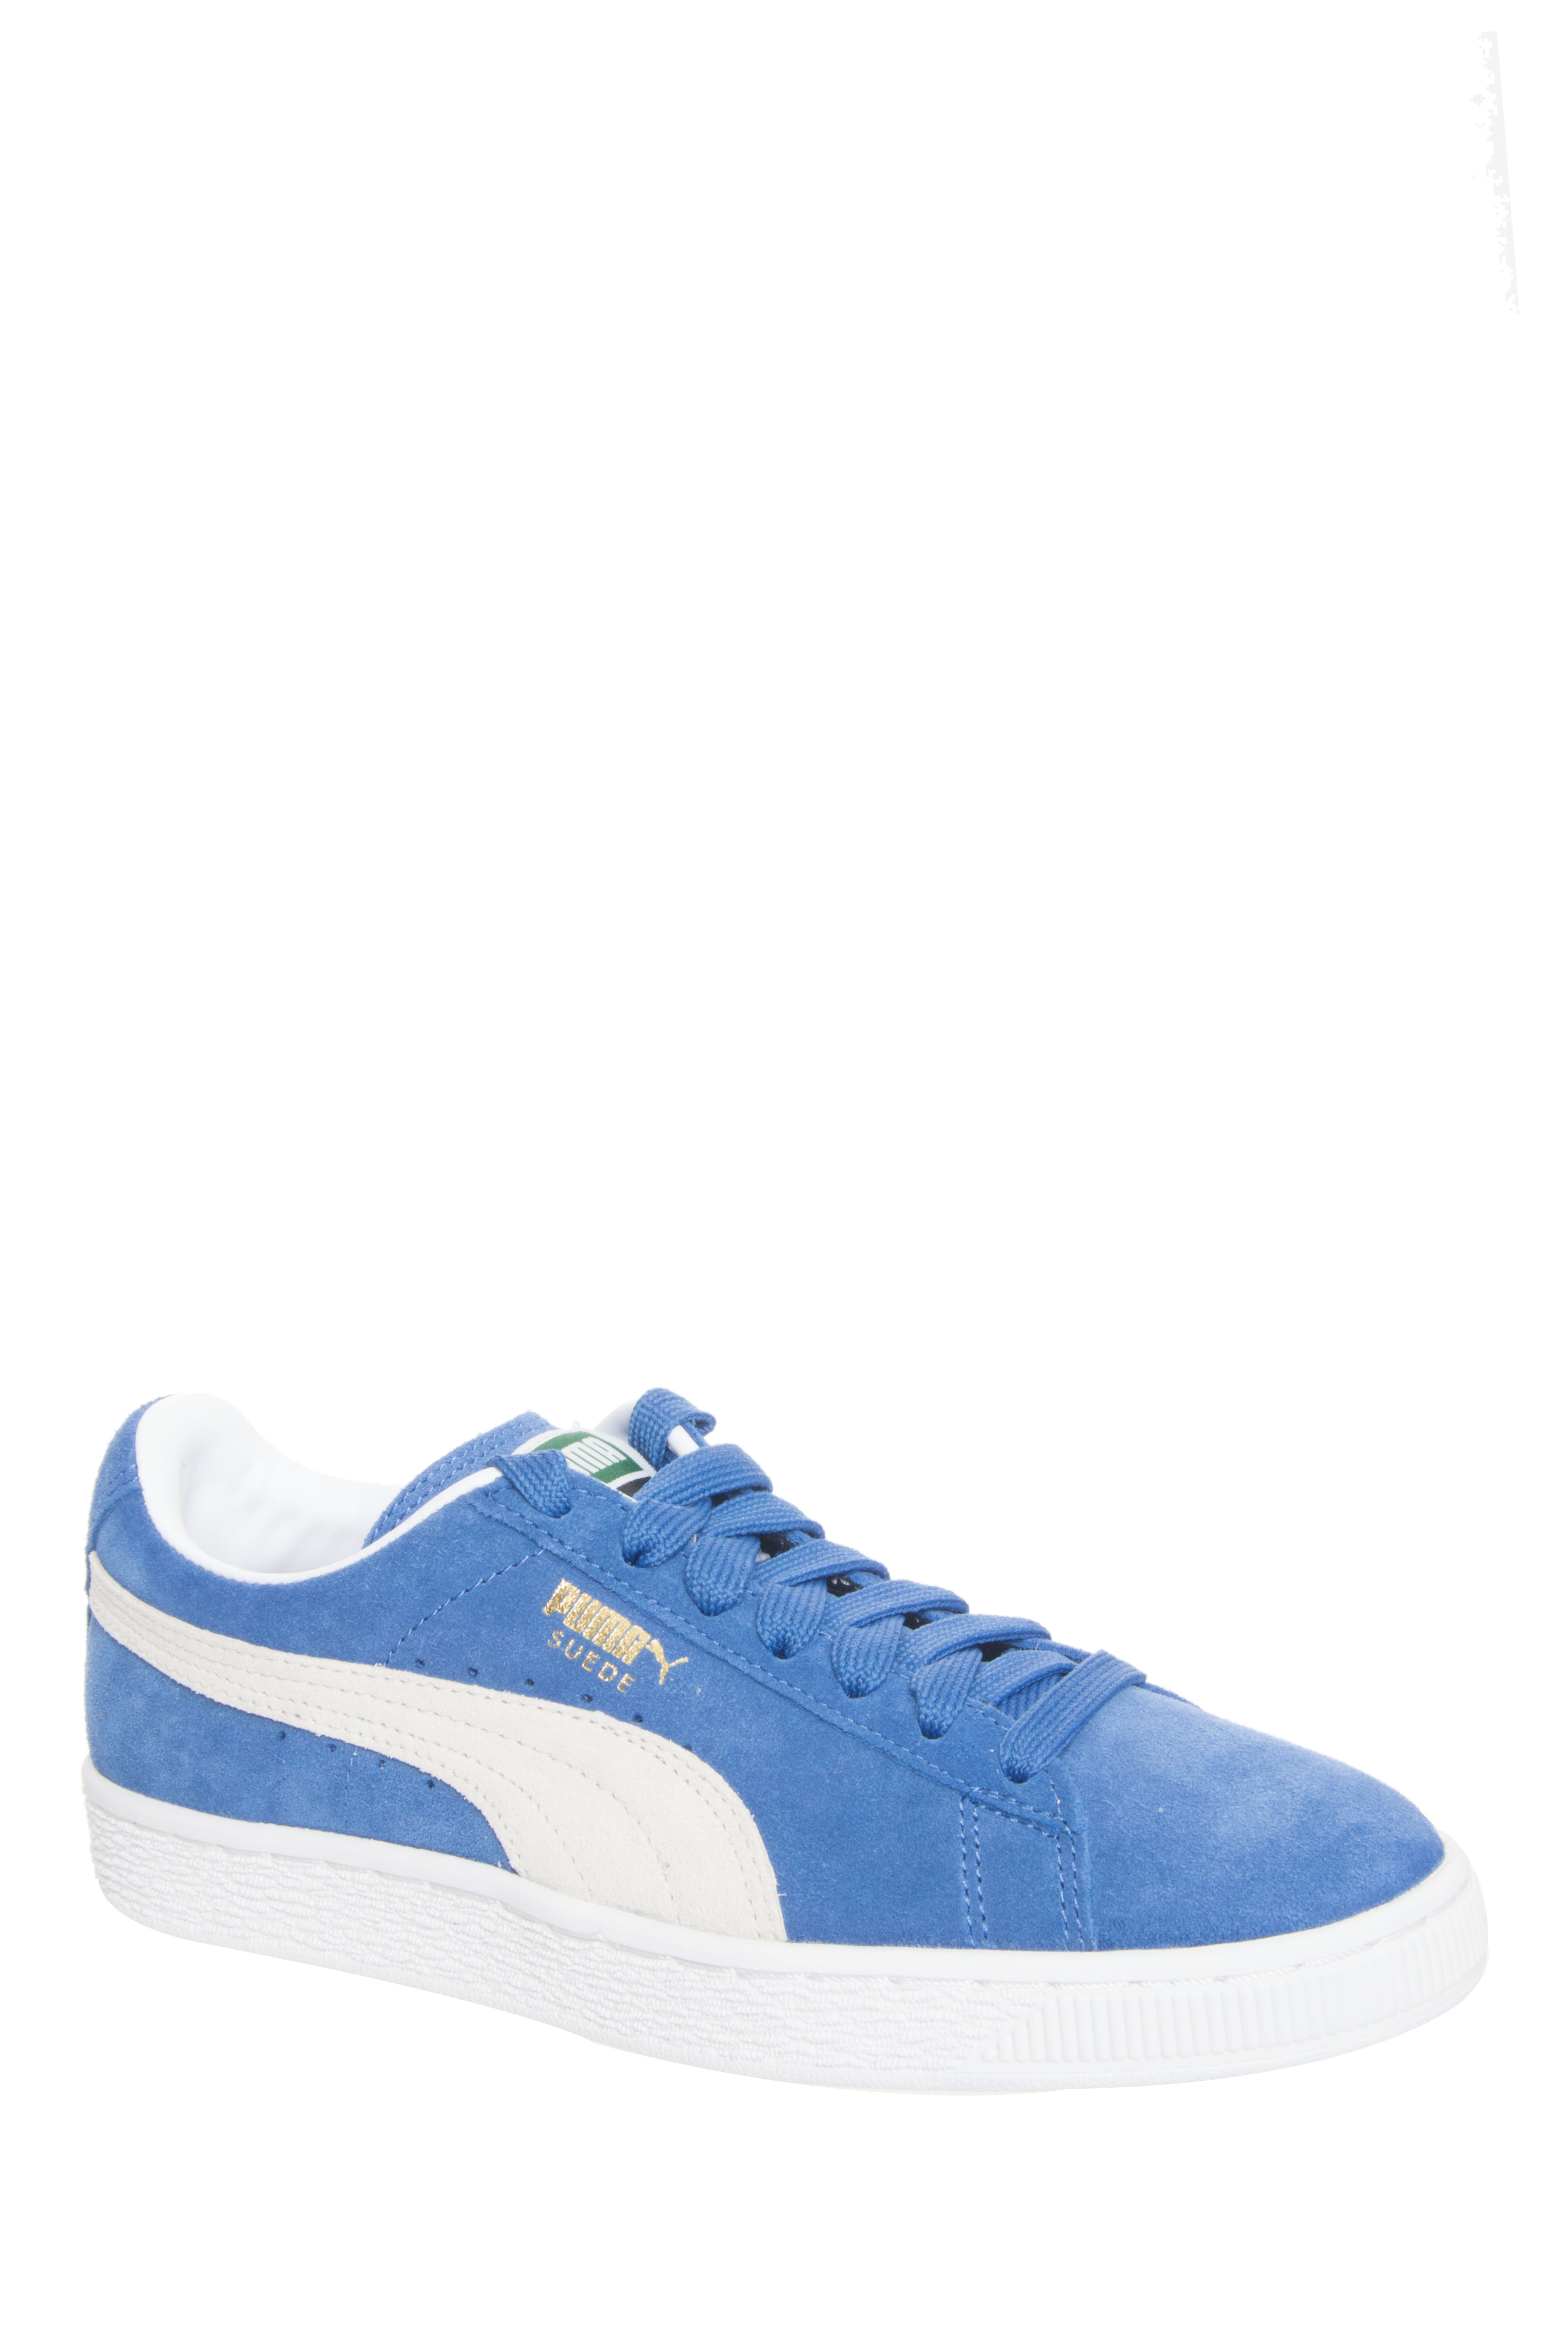 PUMA Suede Classic Low Top Sneakers - Olympic Blue